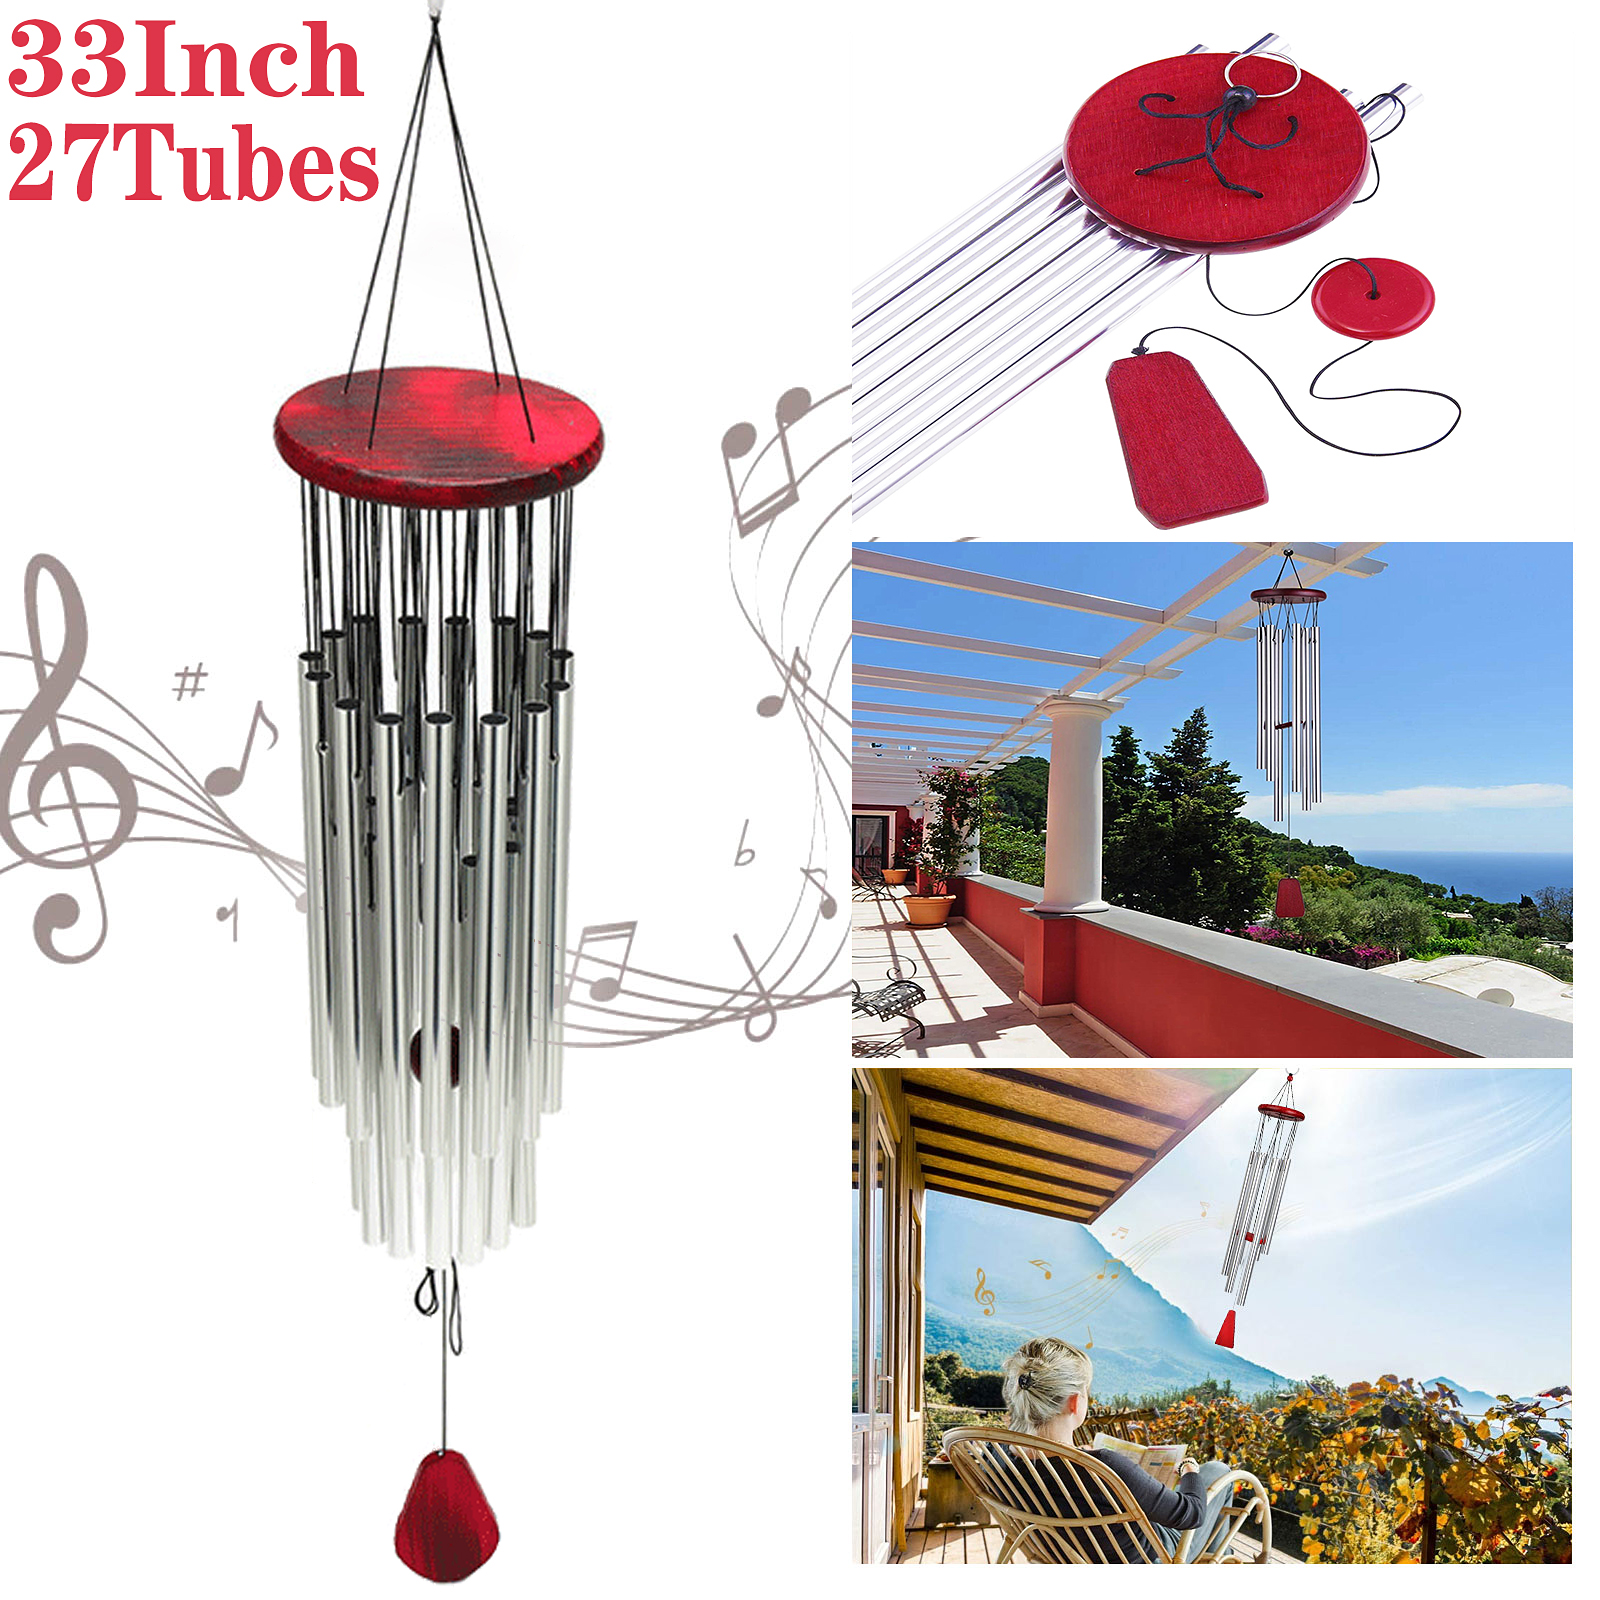 Large 27 Tubes Windchime Chapel Bells Wind Chimes Outdoor Garden Home Decor 33/'/'